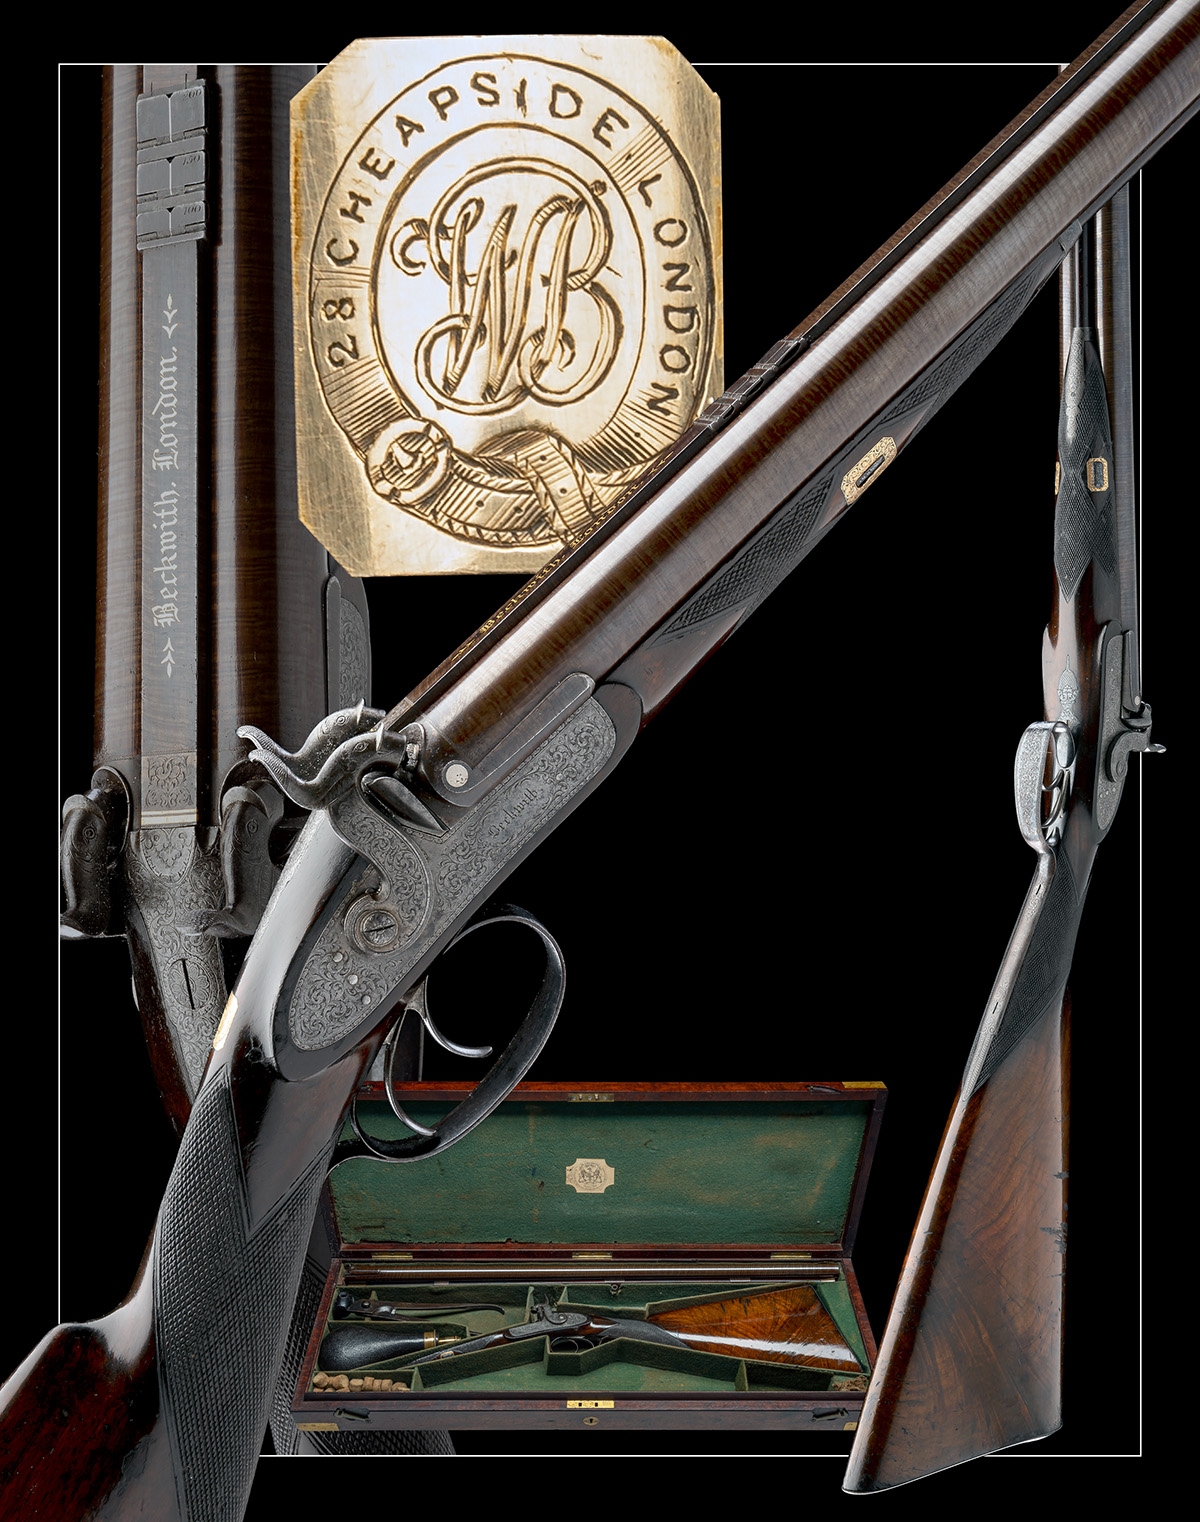 BECKWITH, LONDON A FINE CASED 15-BORE PERCUSSION DOUBLE-RIFLE FOR DANGEROUS GAME, serial no. 2747, - Image 14 of 14